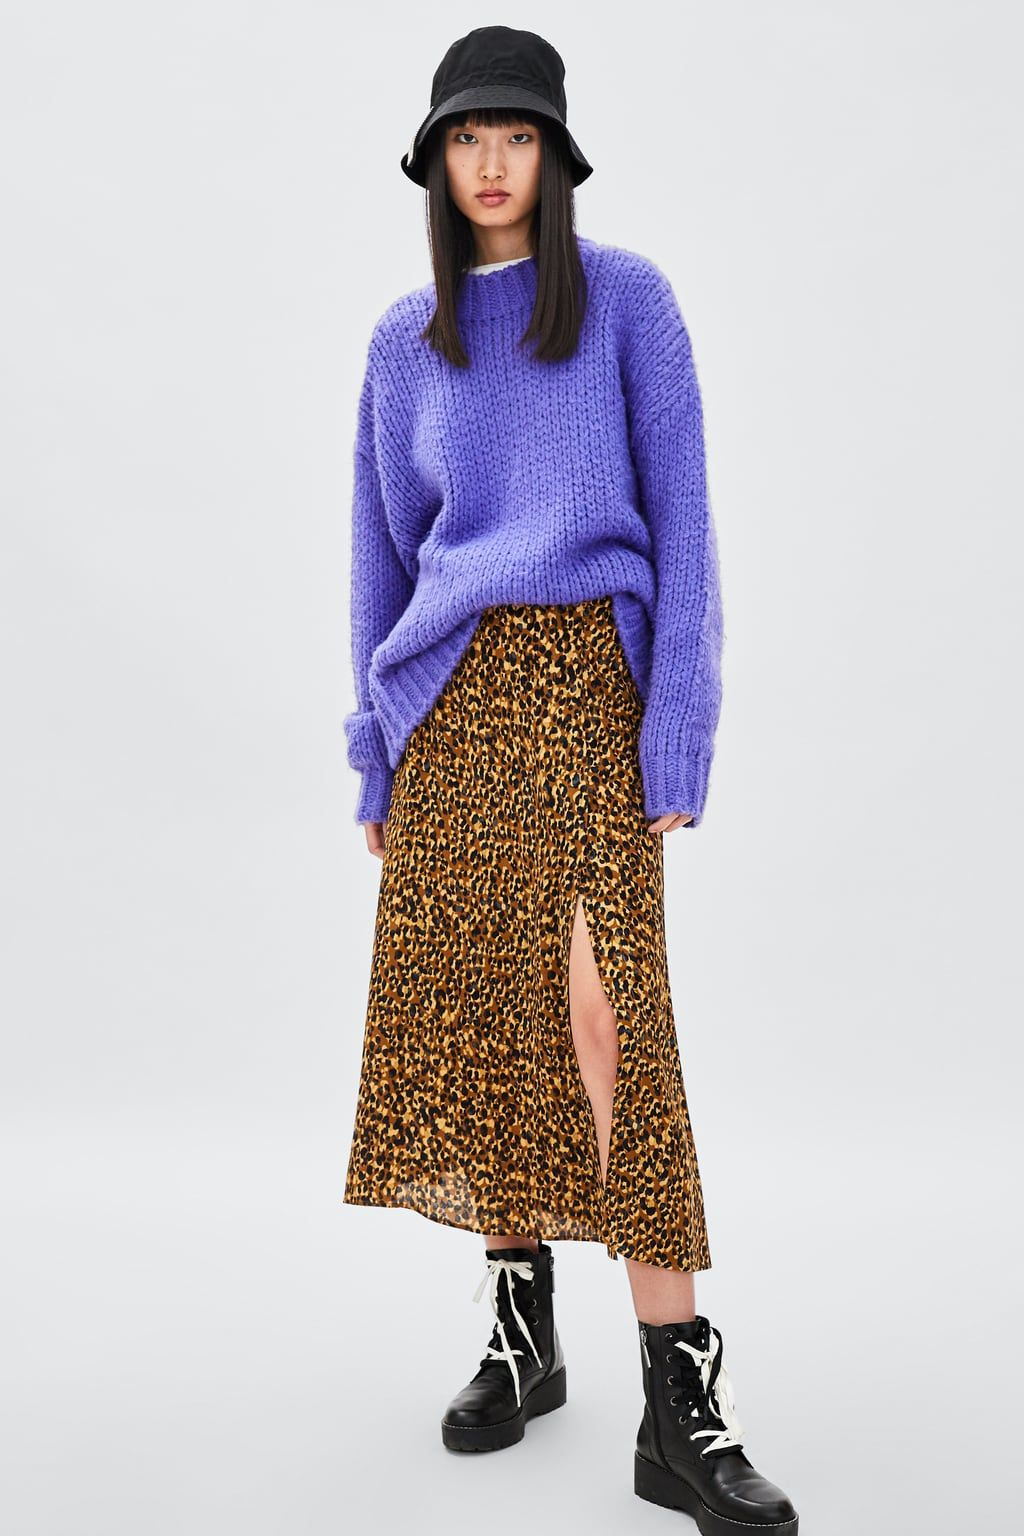 6ec8a614c8 FALDA ESTAMPADO ANIMAL Leopard Print Skirt, Animal Print Skirt, Zara,  Virtual Closet,